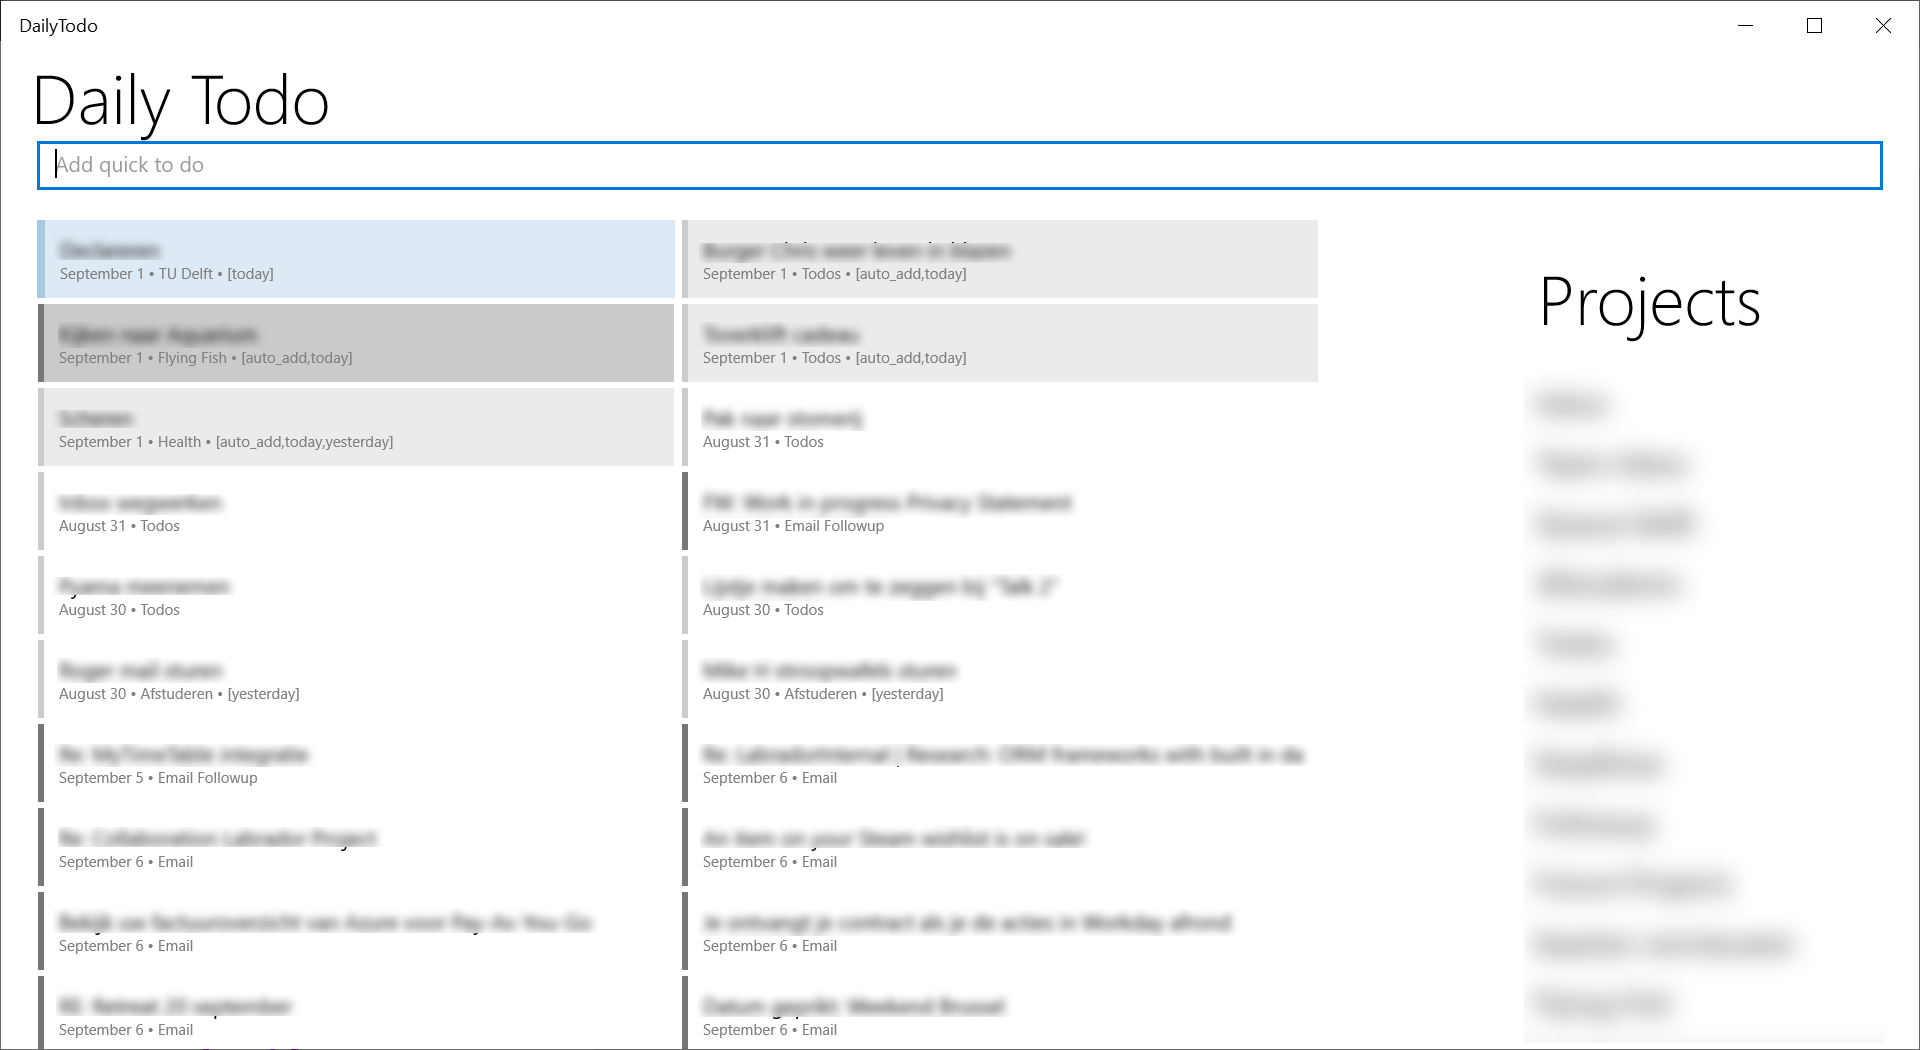 A view of the app with a list of todos (left) and projects (right). The top textbox allows me to search for todo's by label, project or content